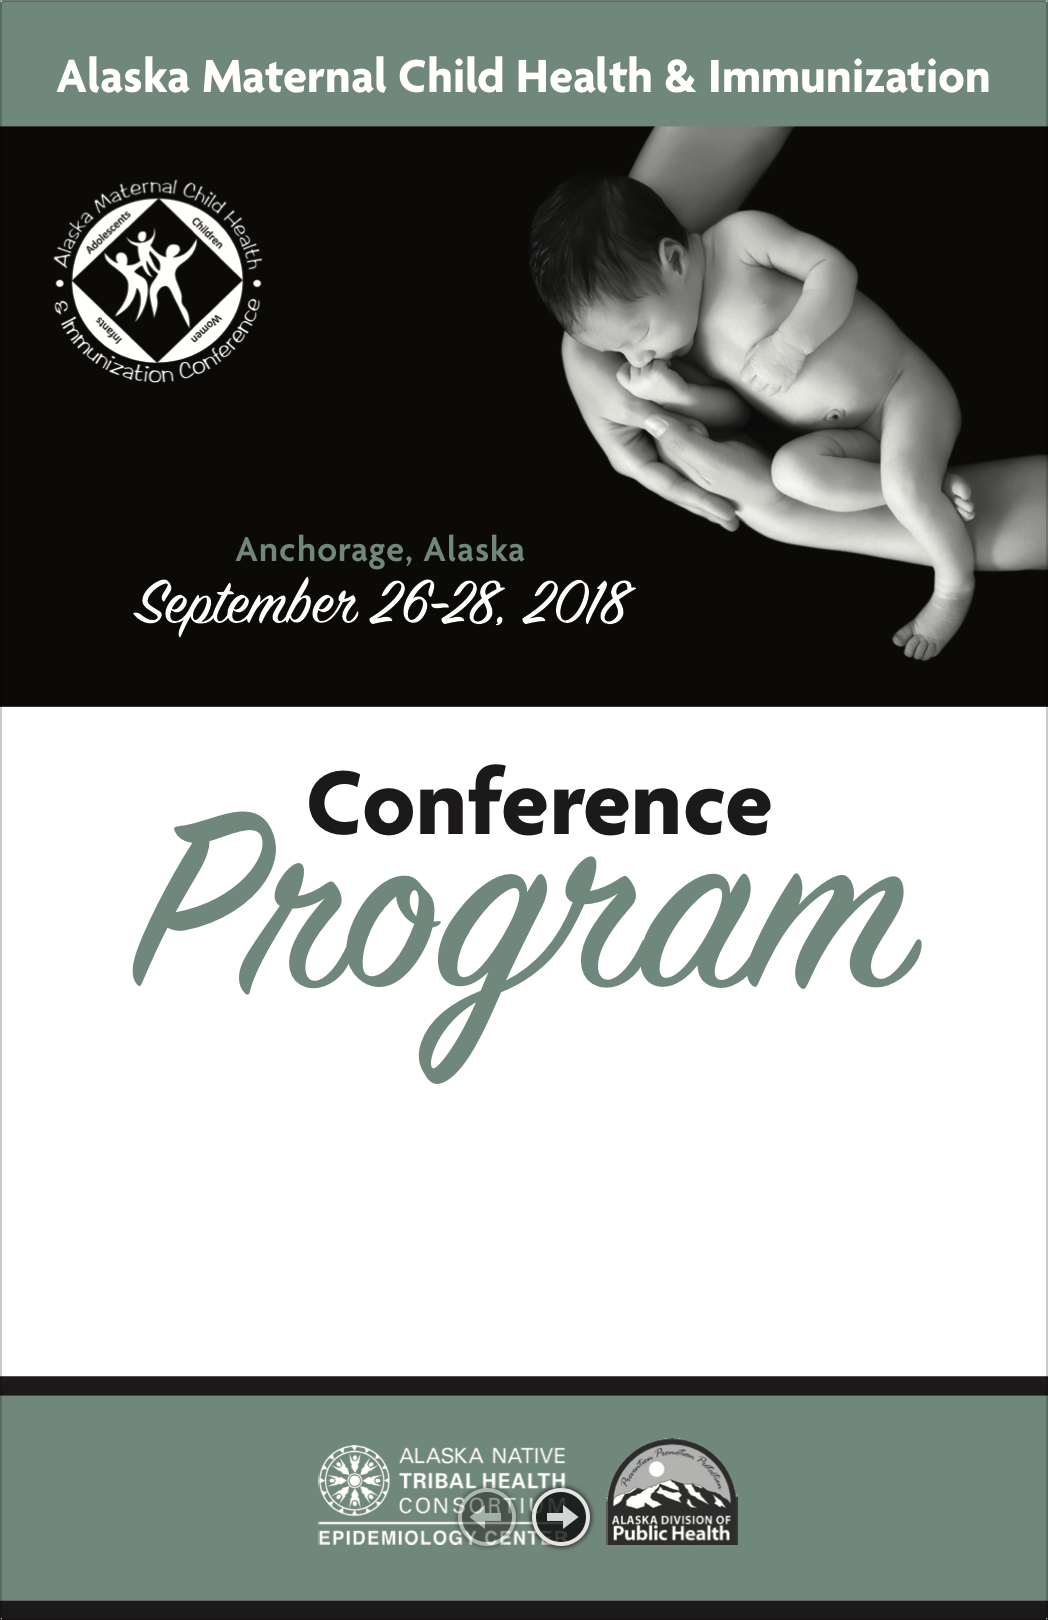 Alaska Maternal Health & Immunization Conference Agenda